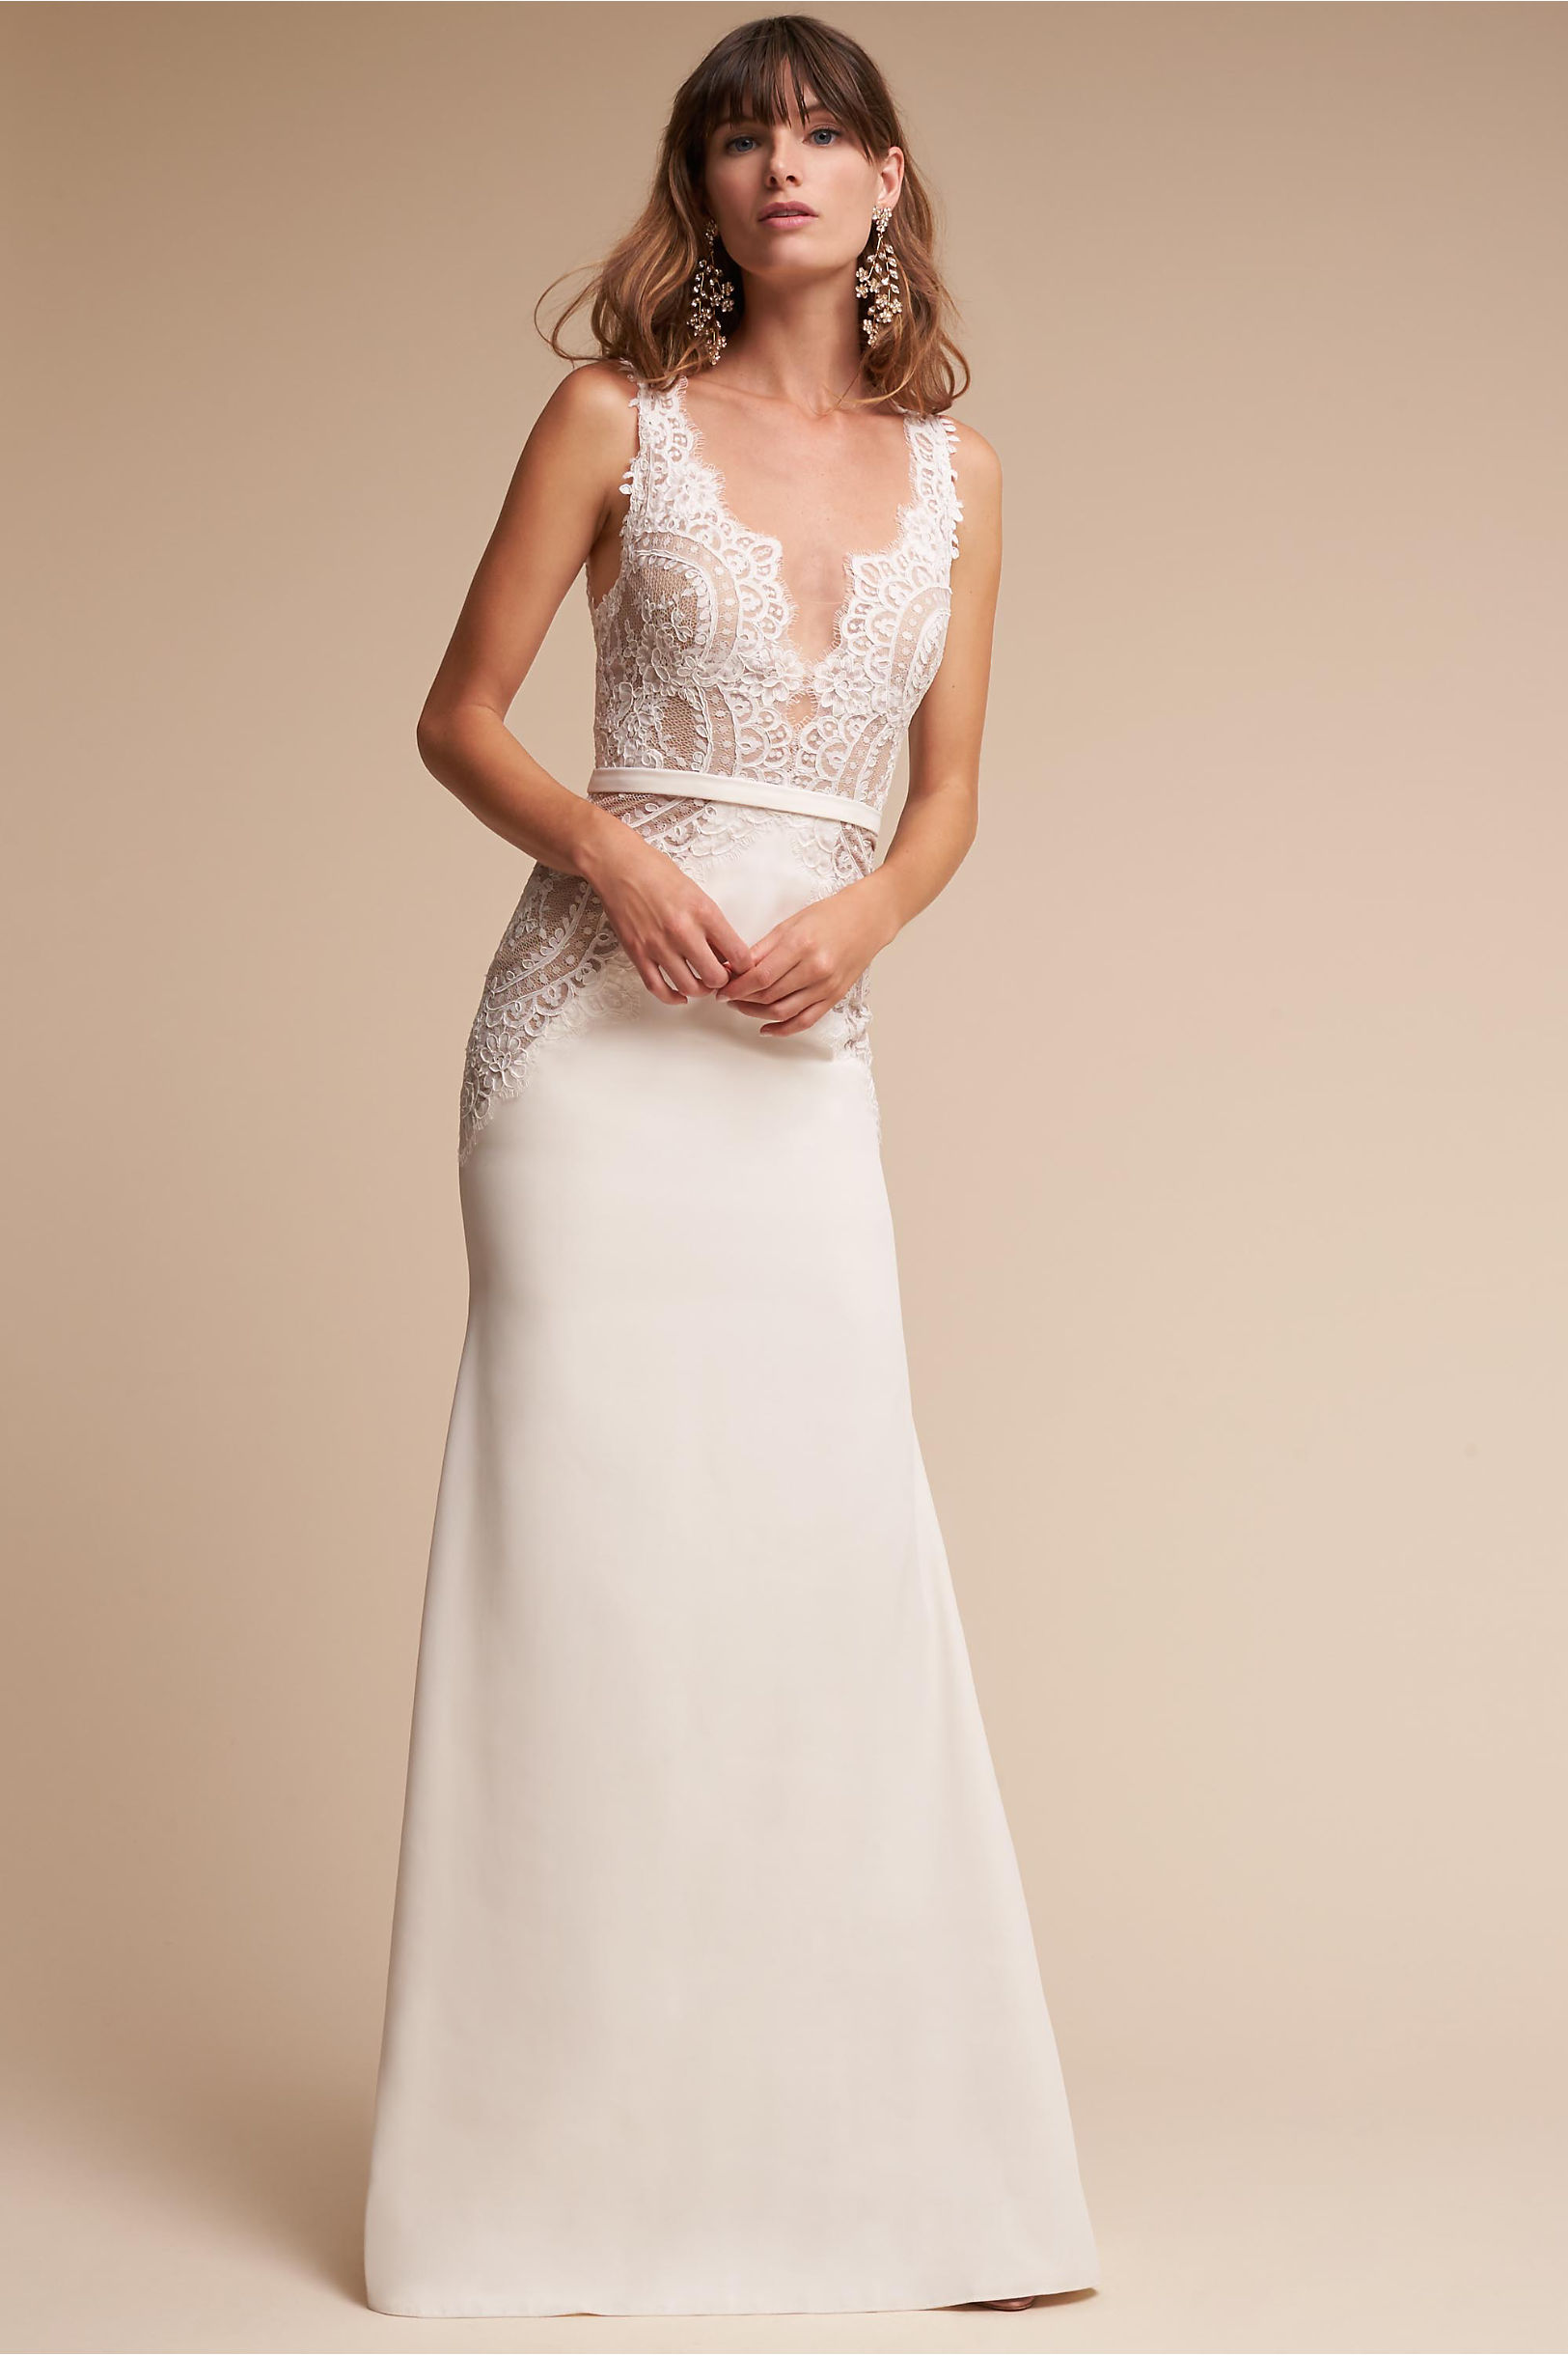 Awesome Bhldn Gown Gallery - Best Evening Gown Inspiration And Ideas ...